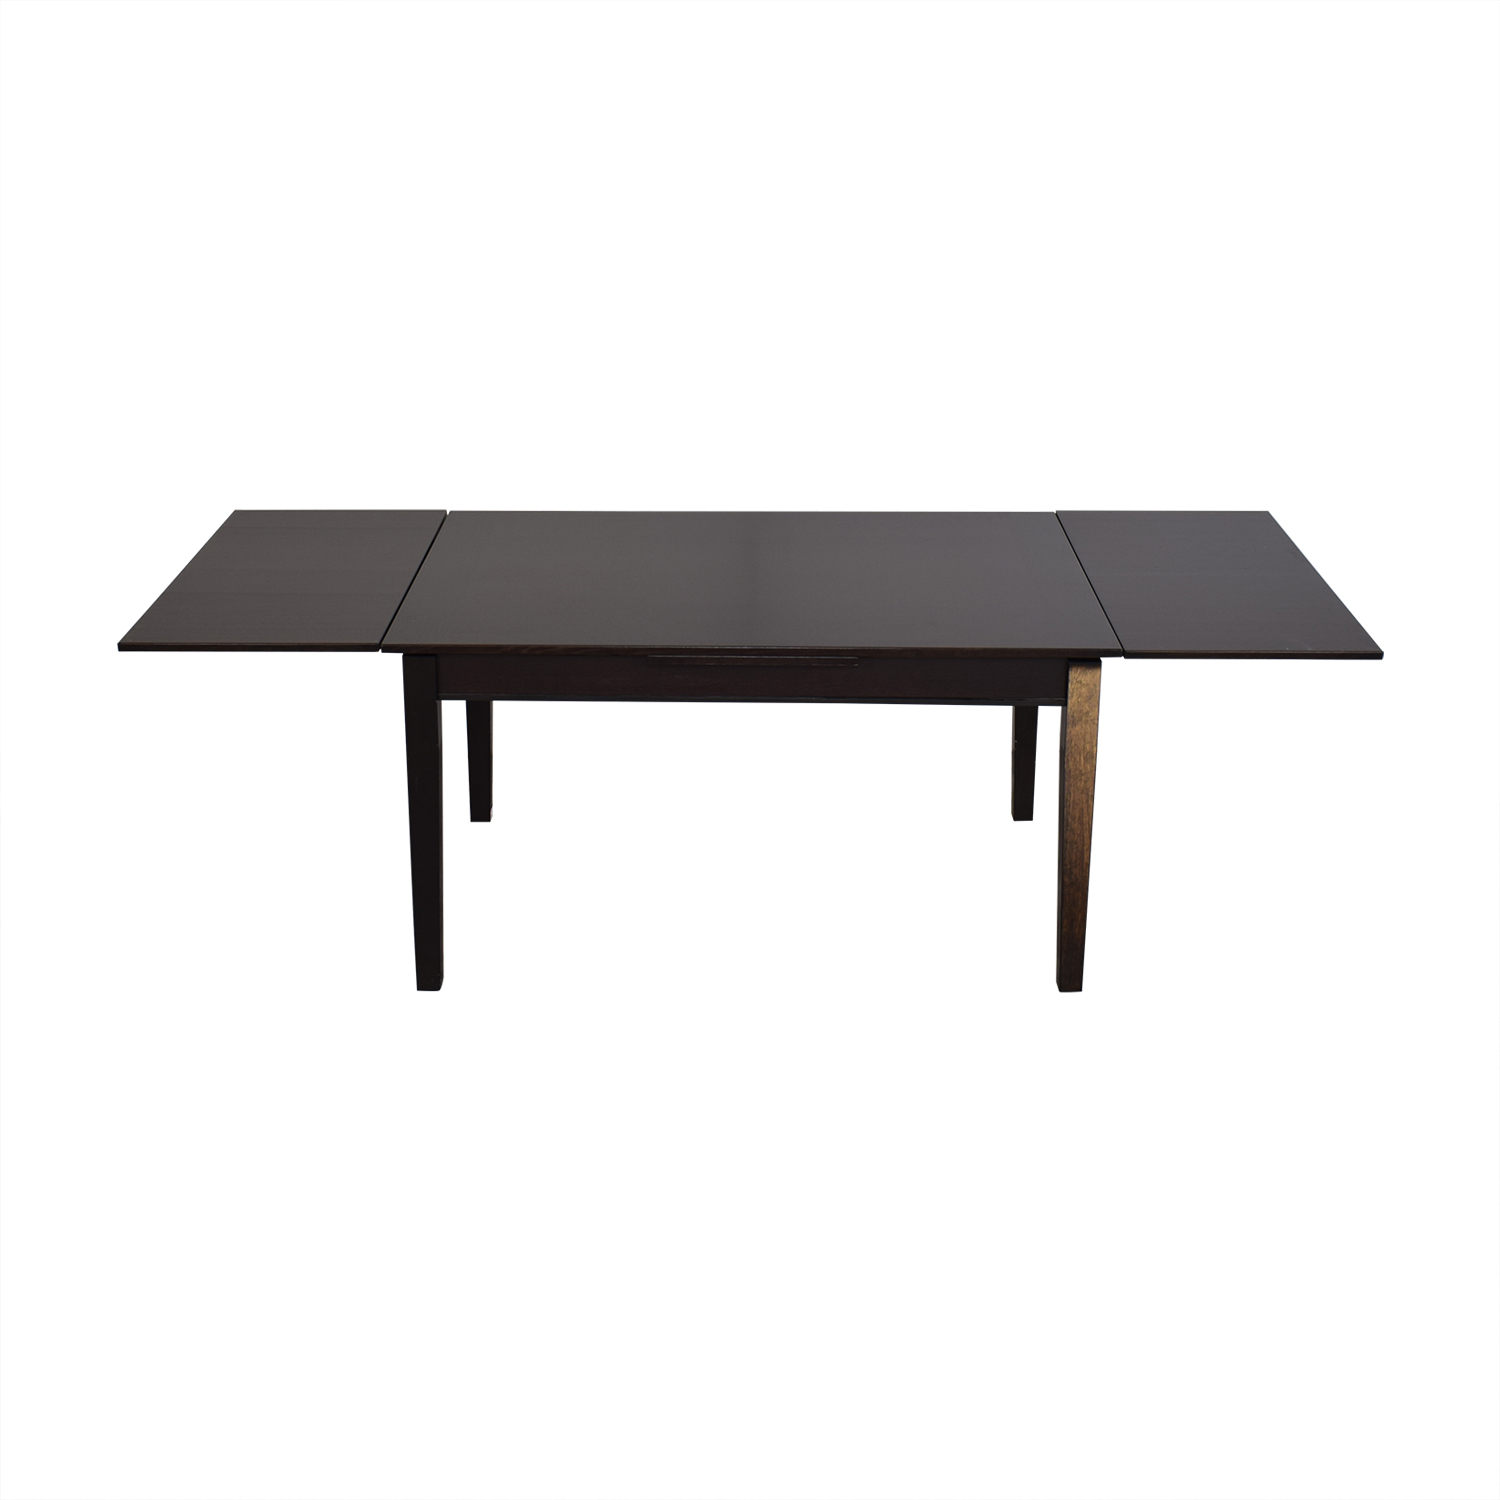 Crate & Barrel Crate & Barrel Pratico Bruno Extension Square Dining Table nyc